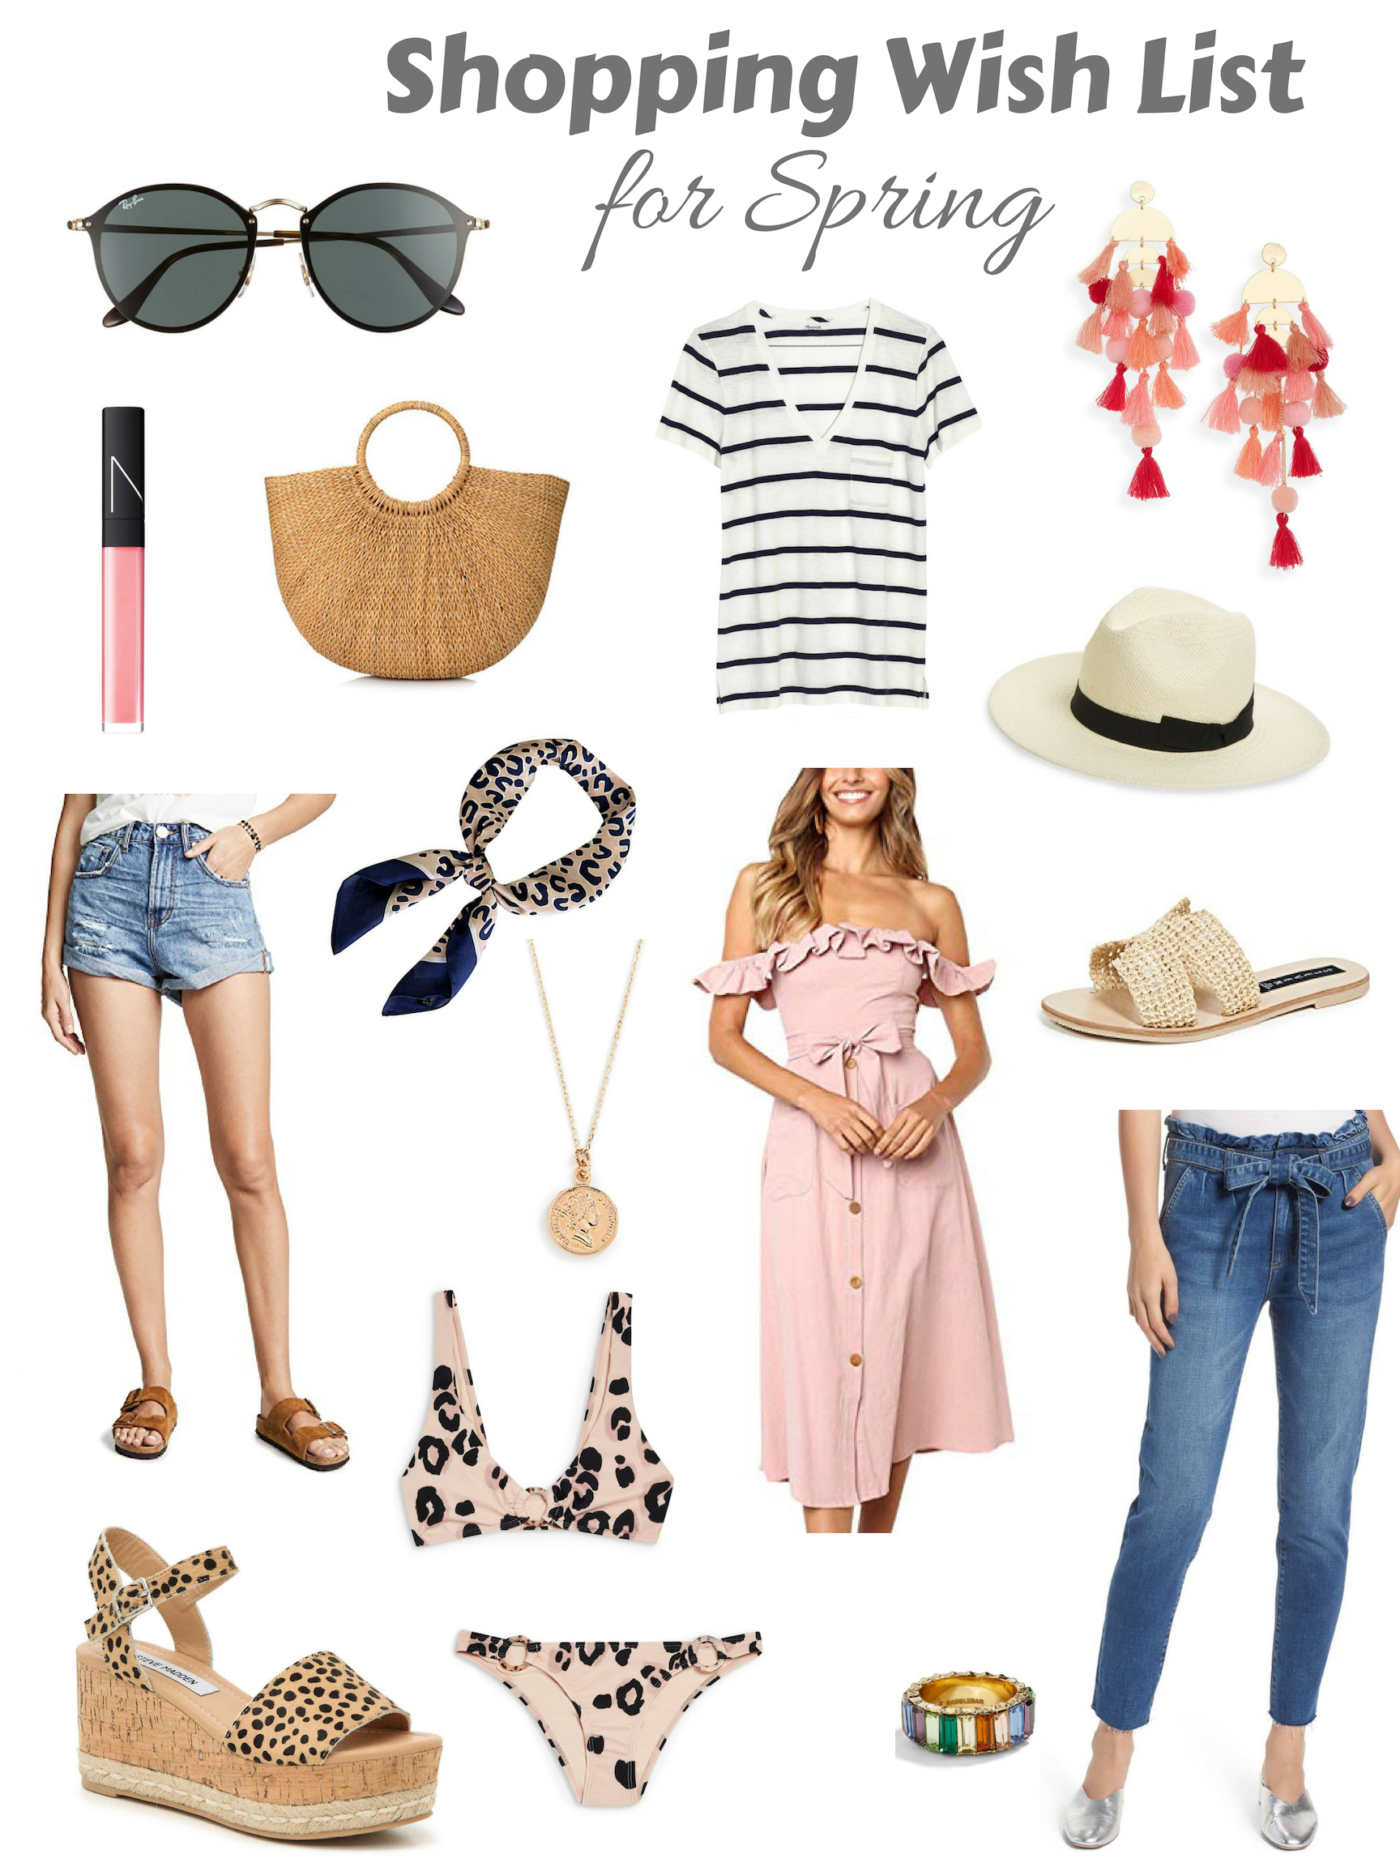 My Shopping Wish list – Spring Edition